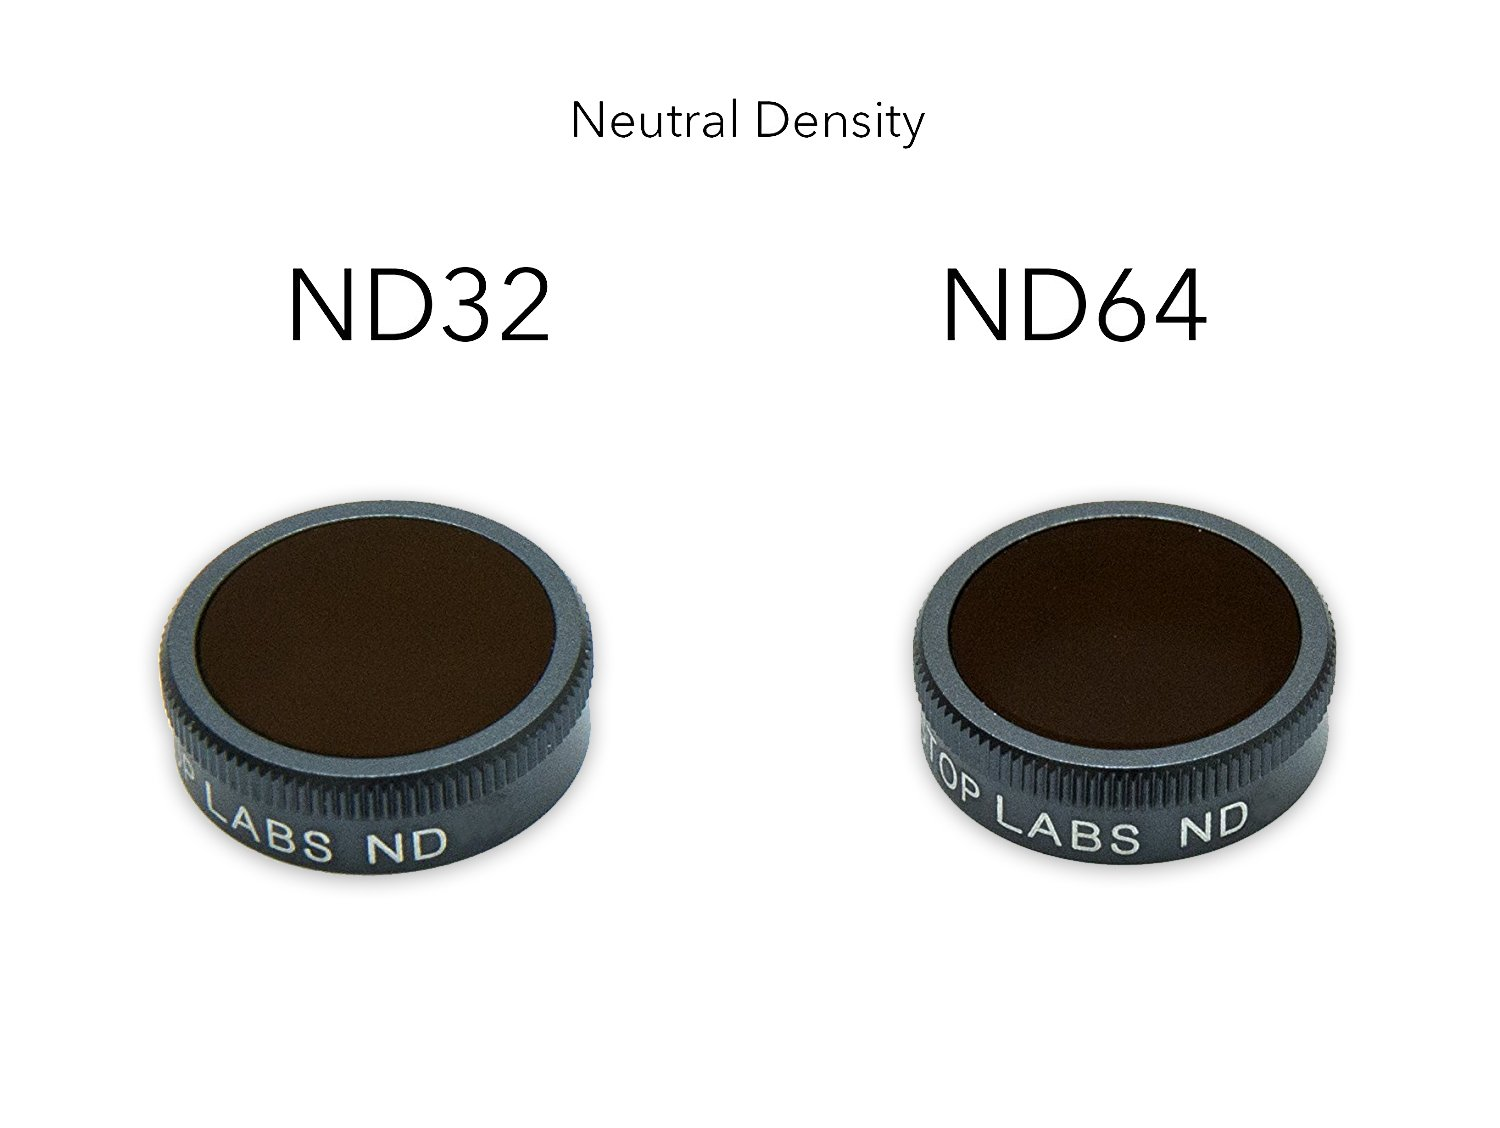 Lens filters For DJI Mavic Air, ND32, ND64, Mavic Air Accessories 4K Camera Lens Multi-coated Filters Pack ND 32 & ND 64 (2 Pack)